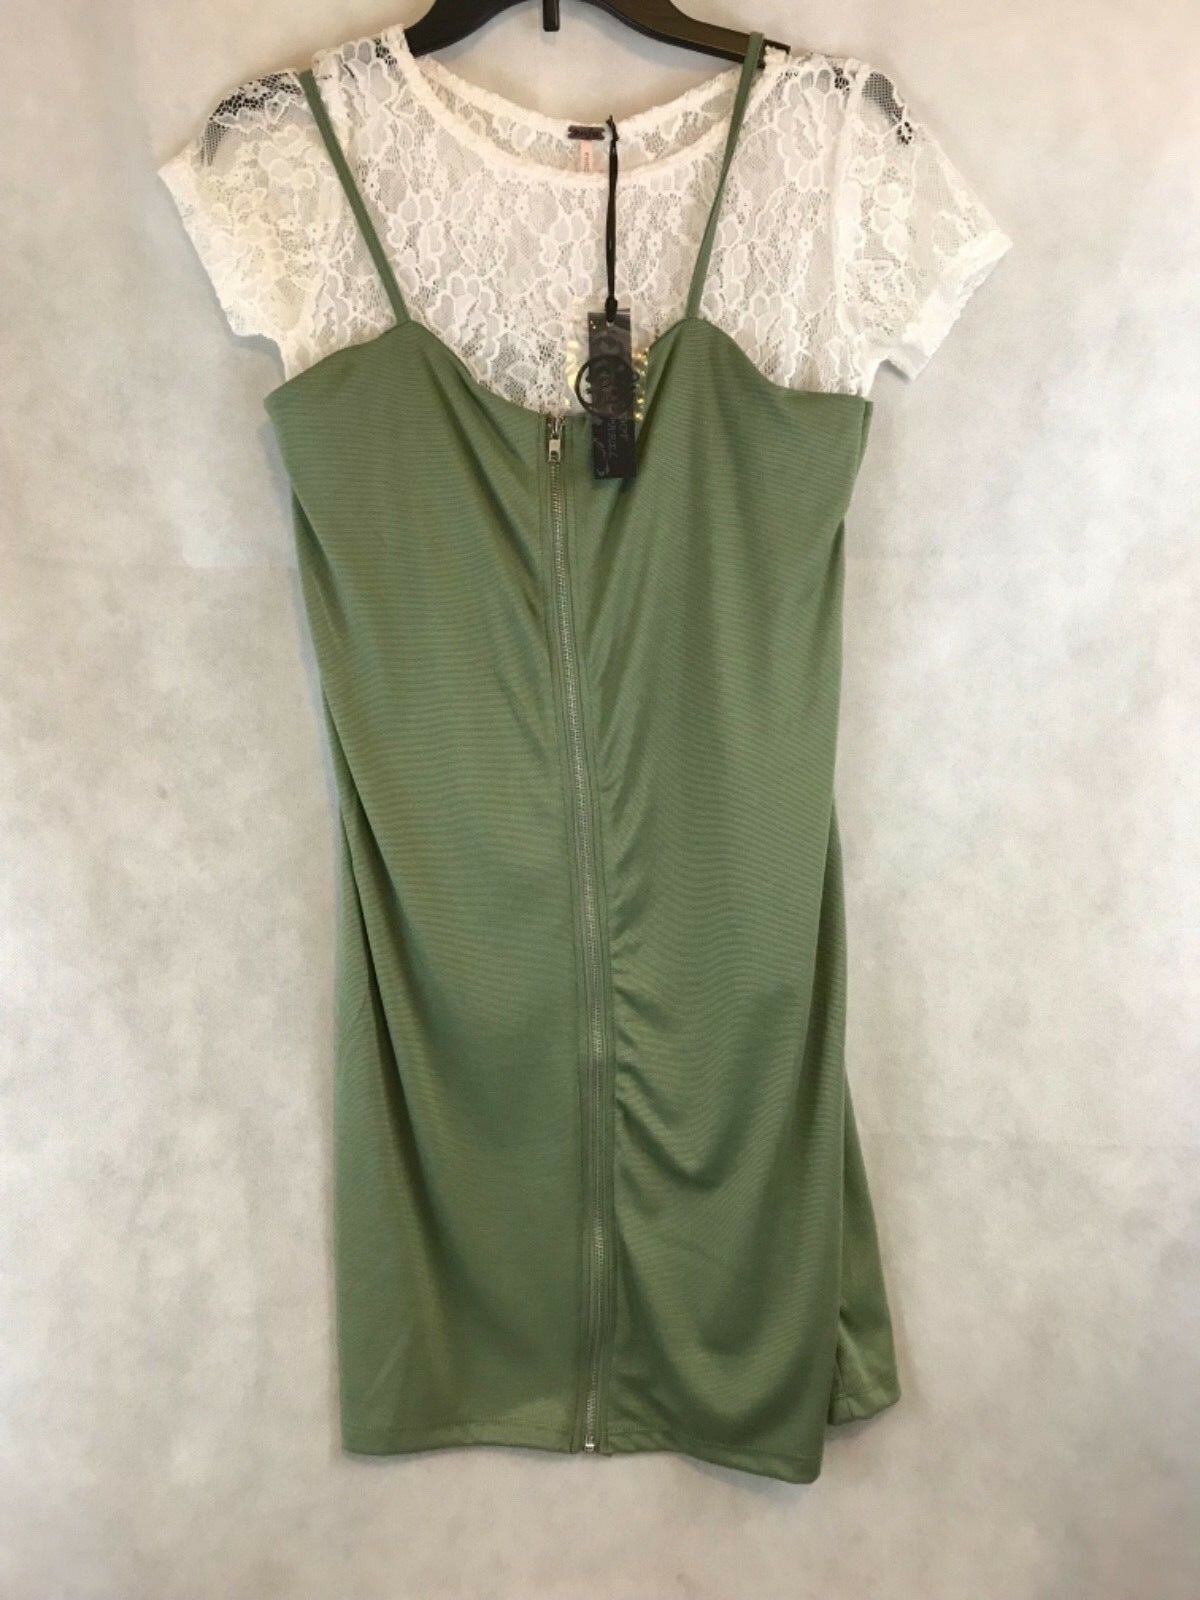 New Poof Apparel Lace Top Olive Green Dress Jumper Womens Size Medium